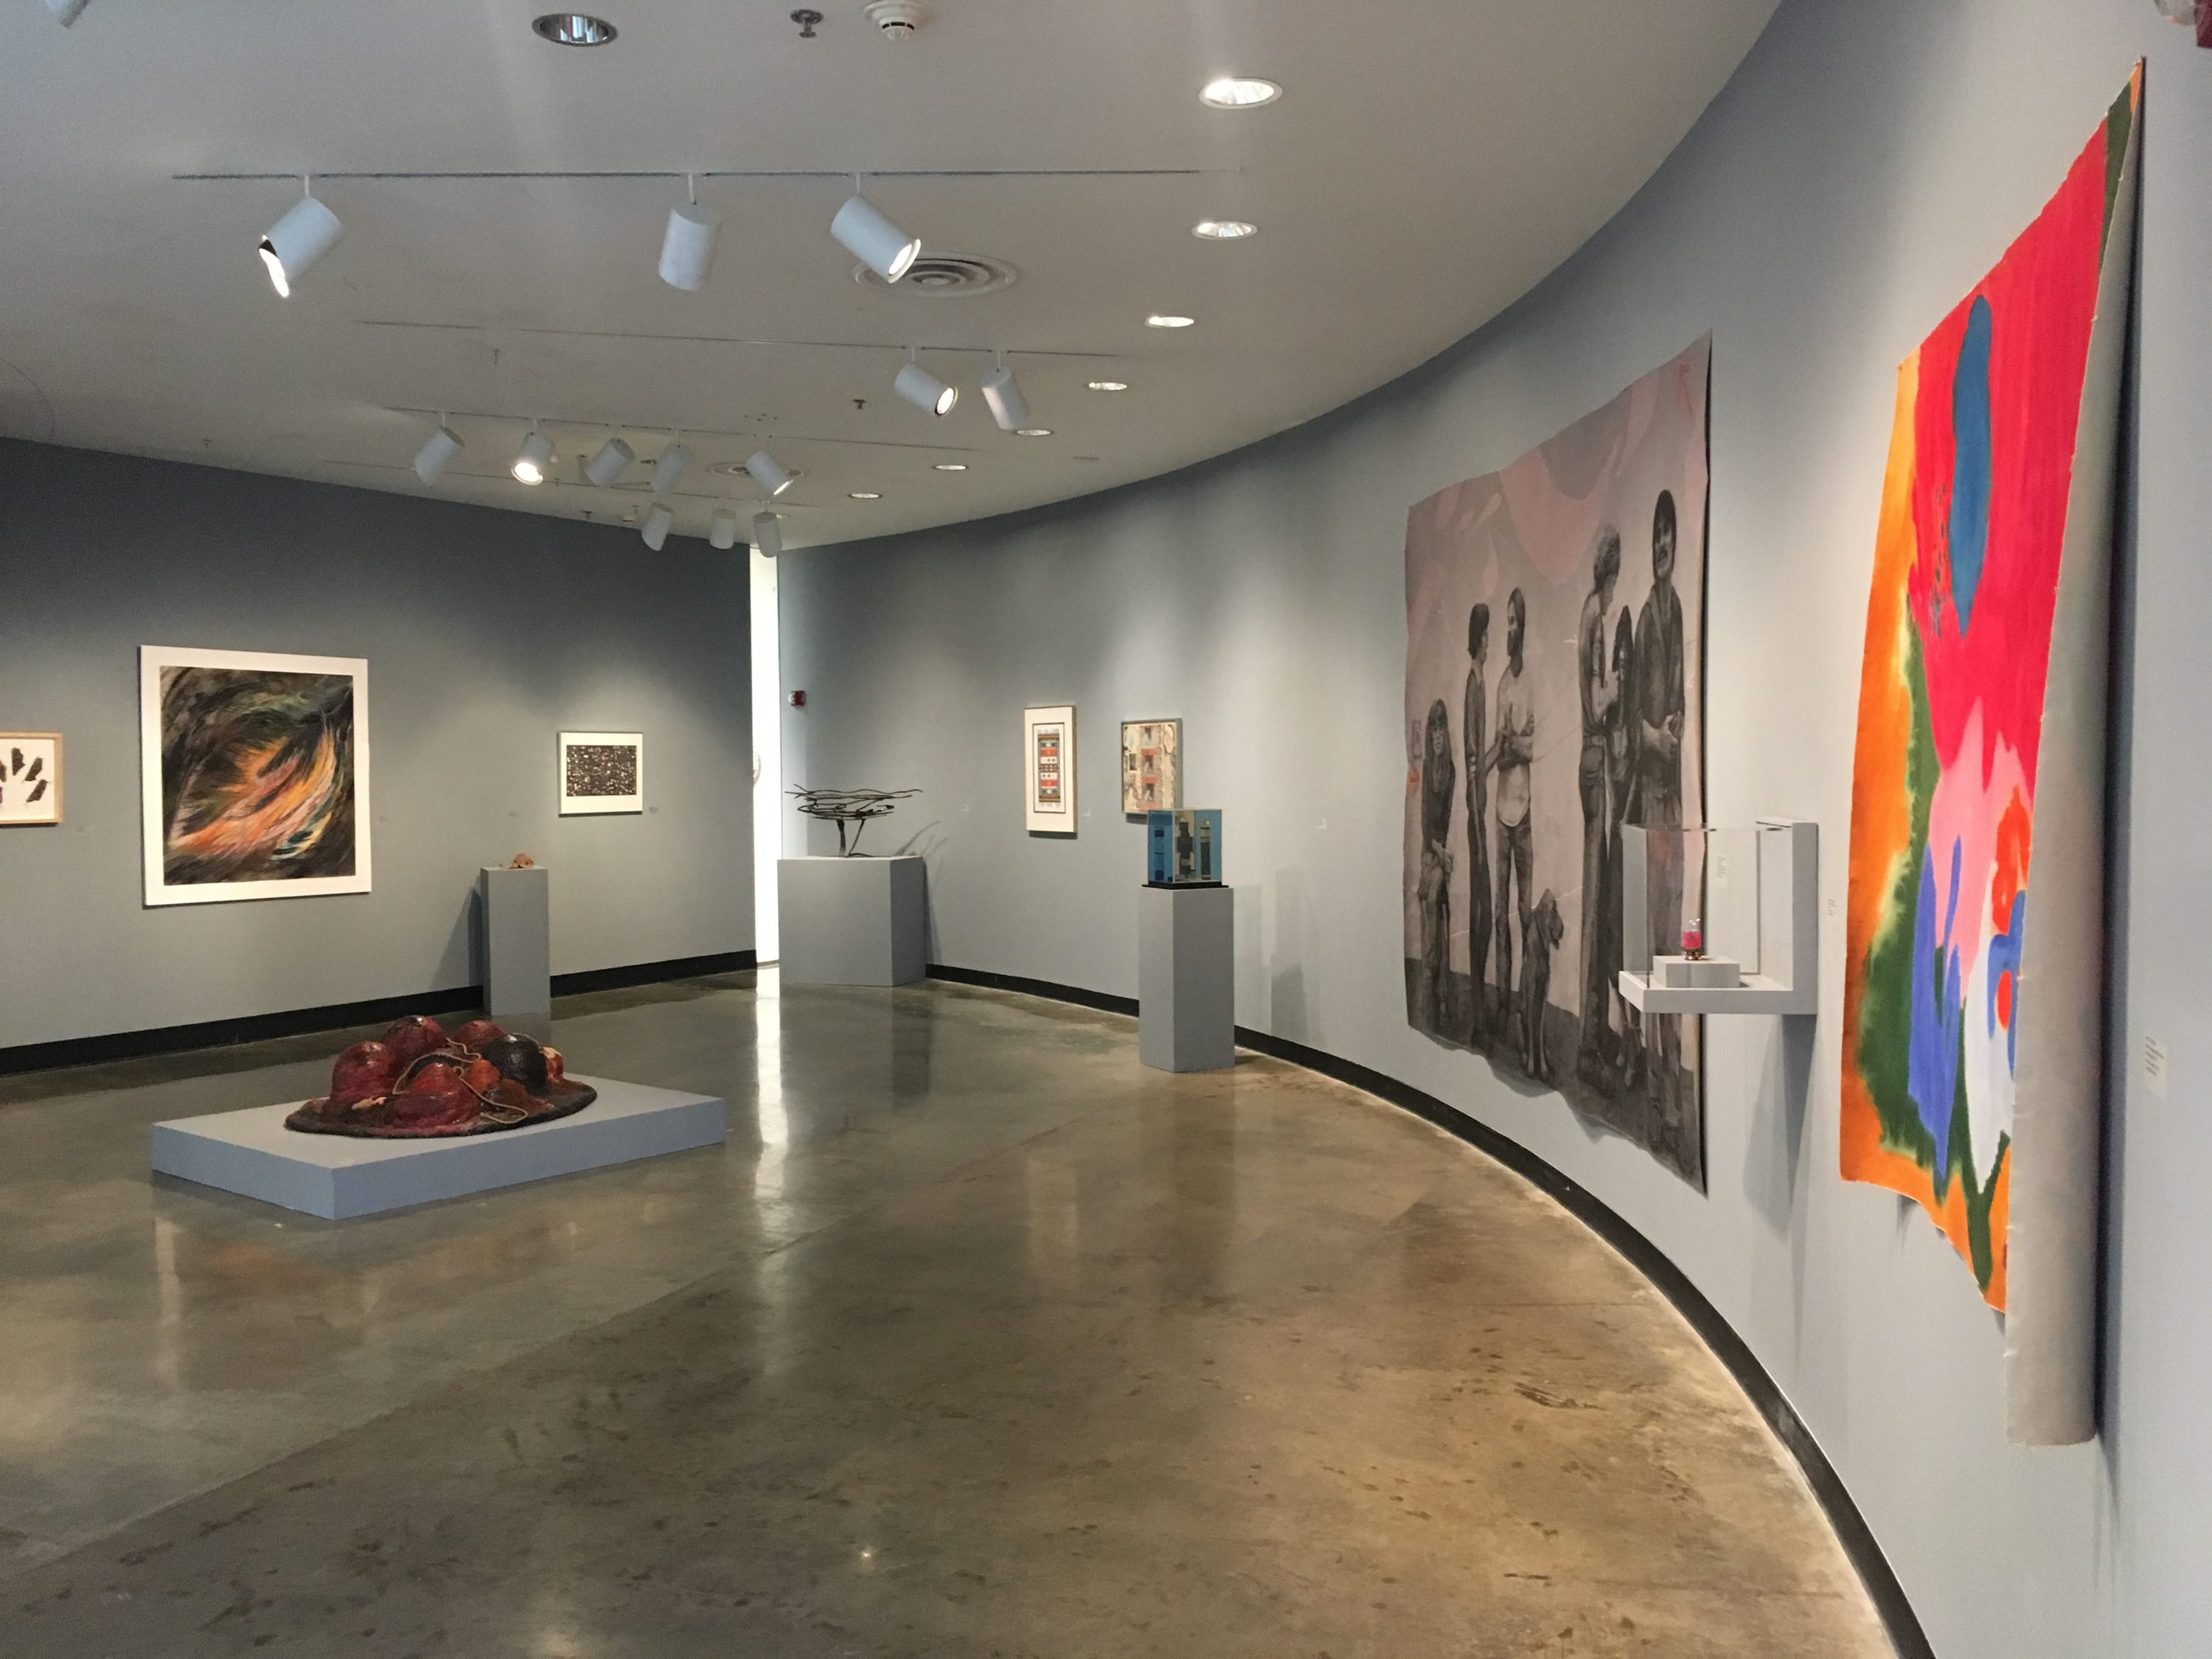 Exhibition Stand Galleries : A gallery of ones own: how the washington womens arts center